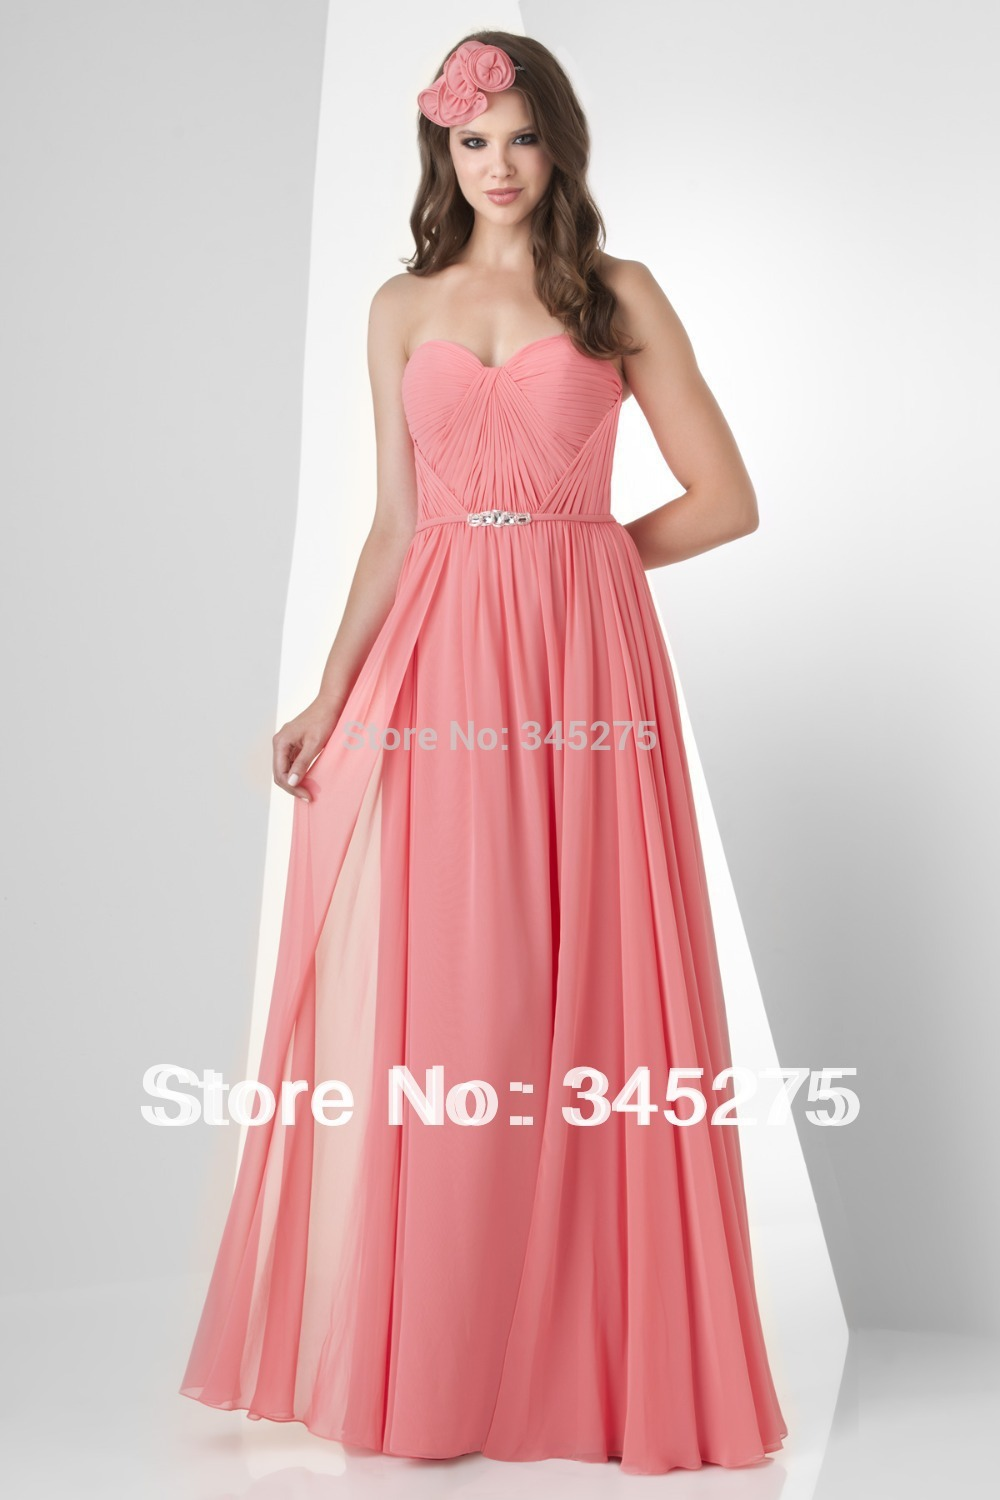 Floor length bridesmaid dresses under 100 image collections under bust dress promotion shop for promotional under bust dress tulip color sweetheart shirred bust beaded ombrellifo Image collections